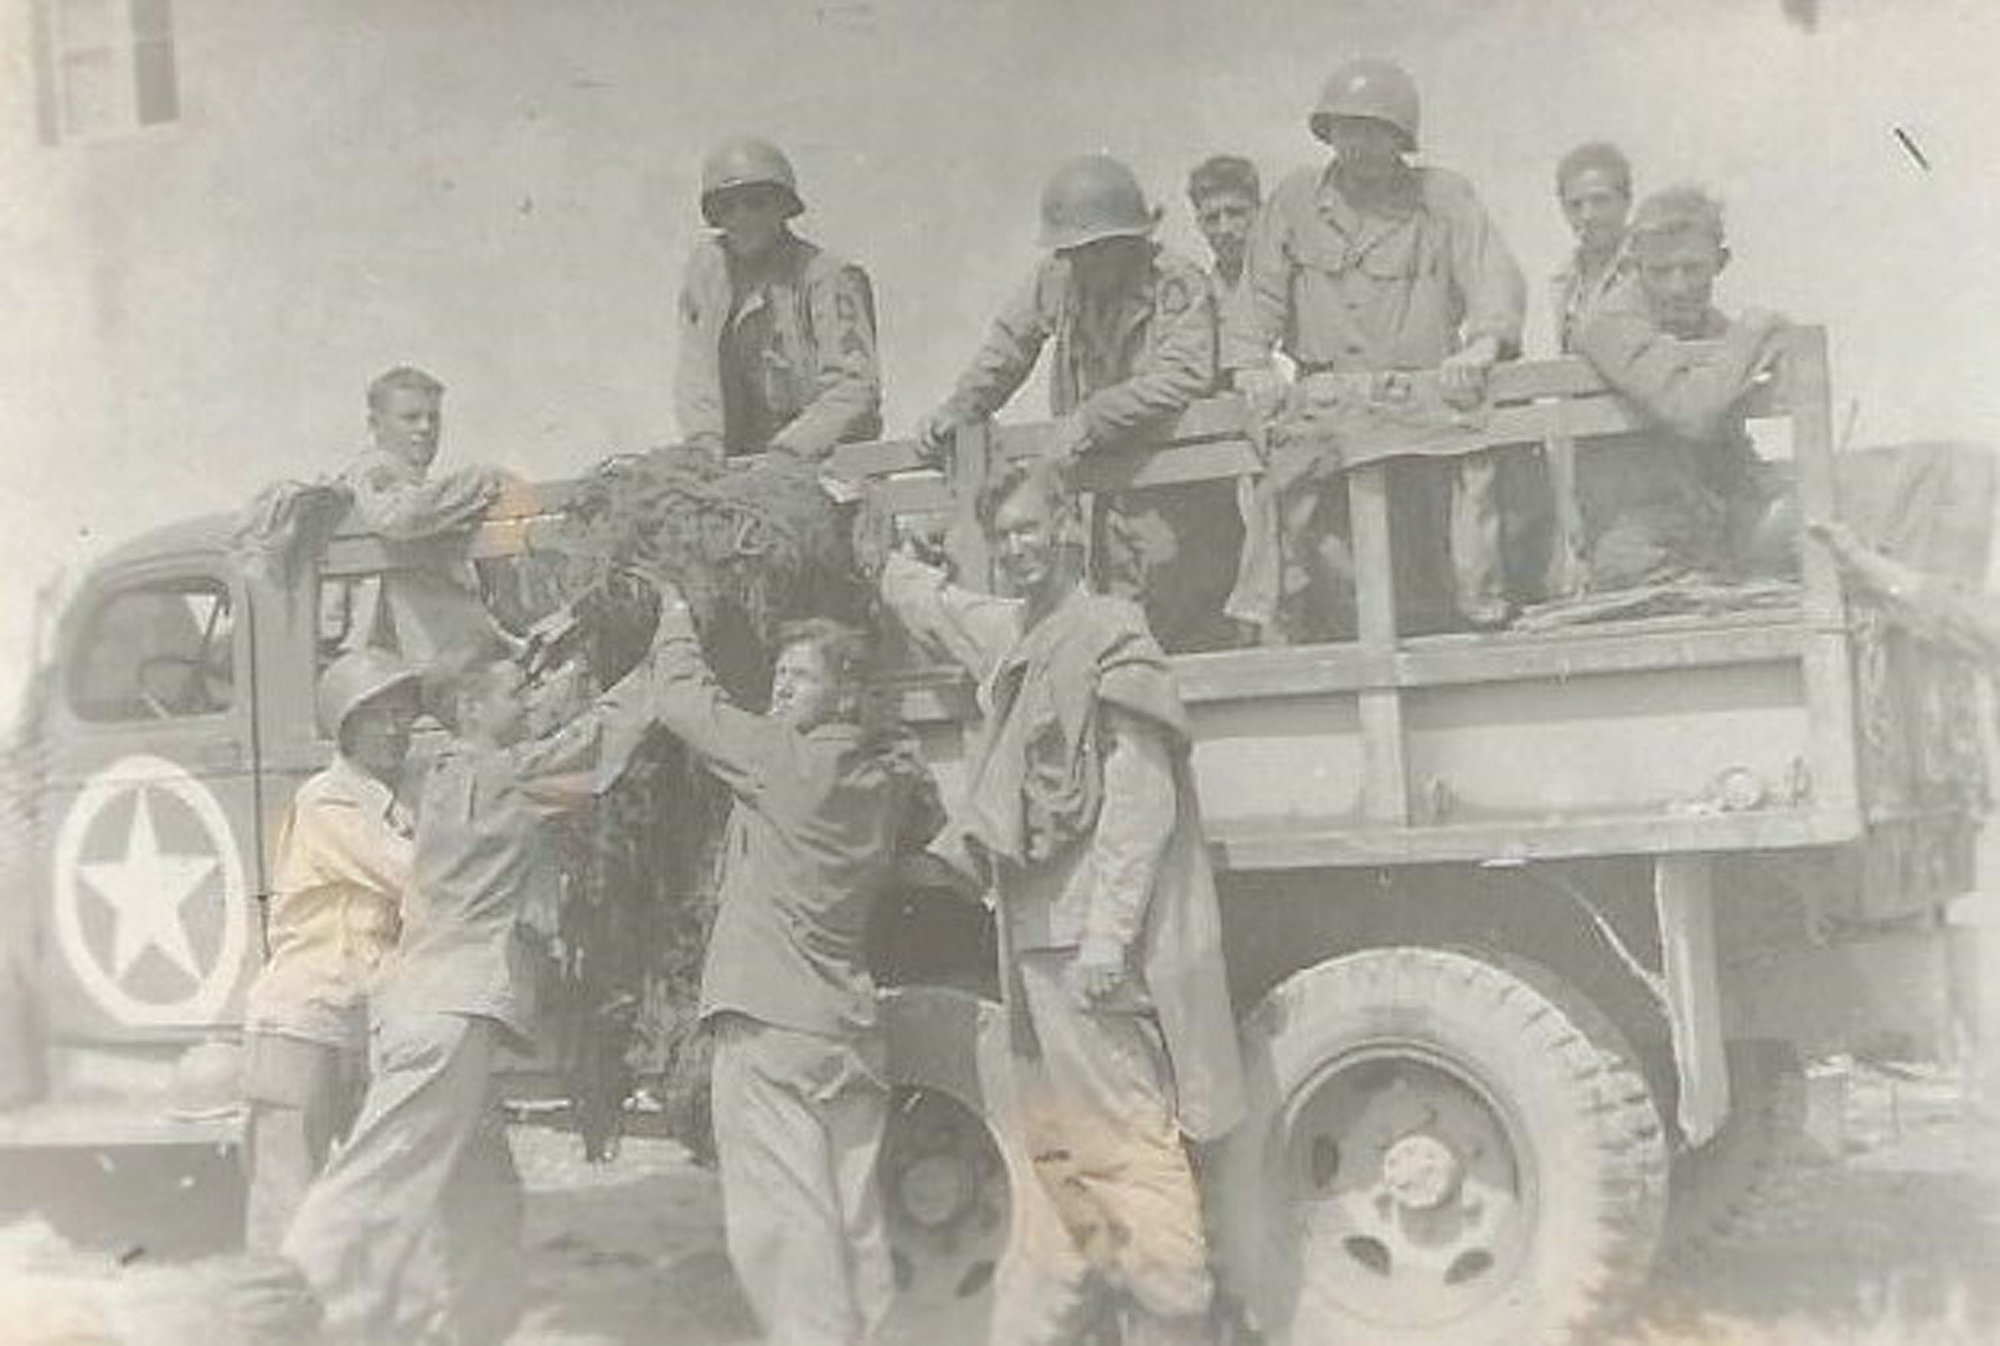 John Henry Thomas and members of his battalion are seen after digging in positions during World War II.